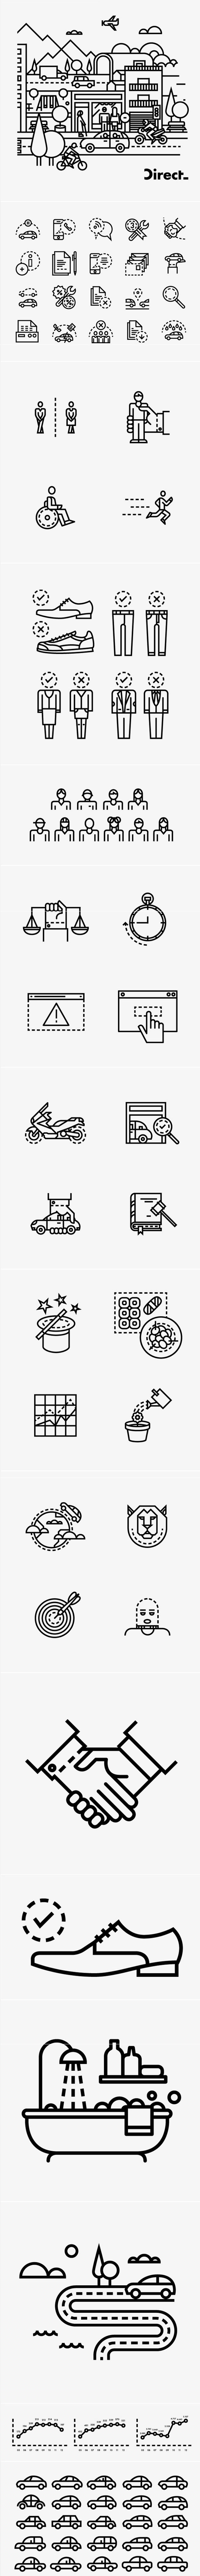 Direct Seguros #Icons #pictograms